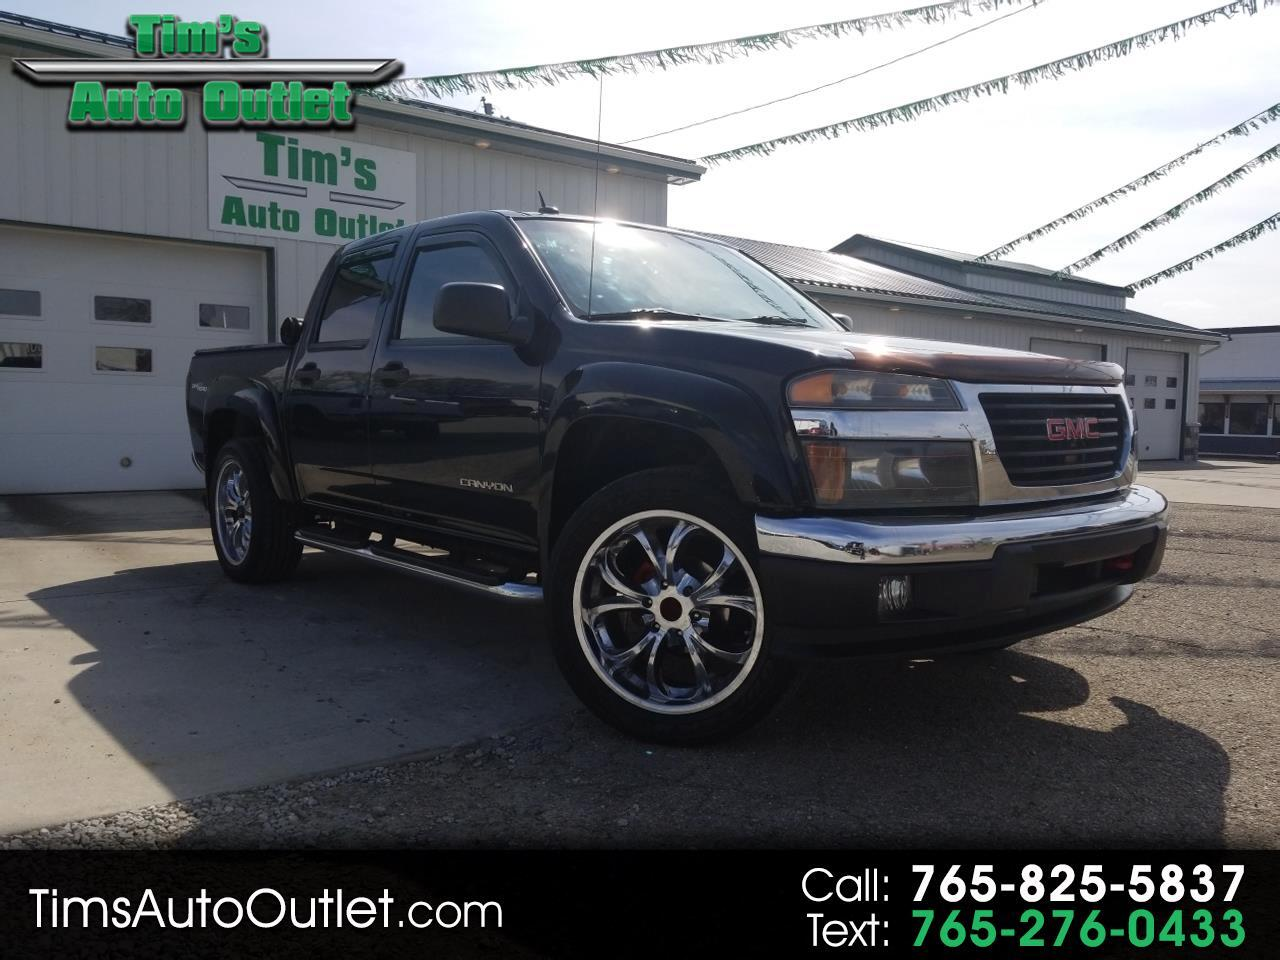 2005 GMC Canyon Crew Cab 126.0